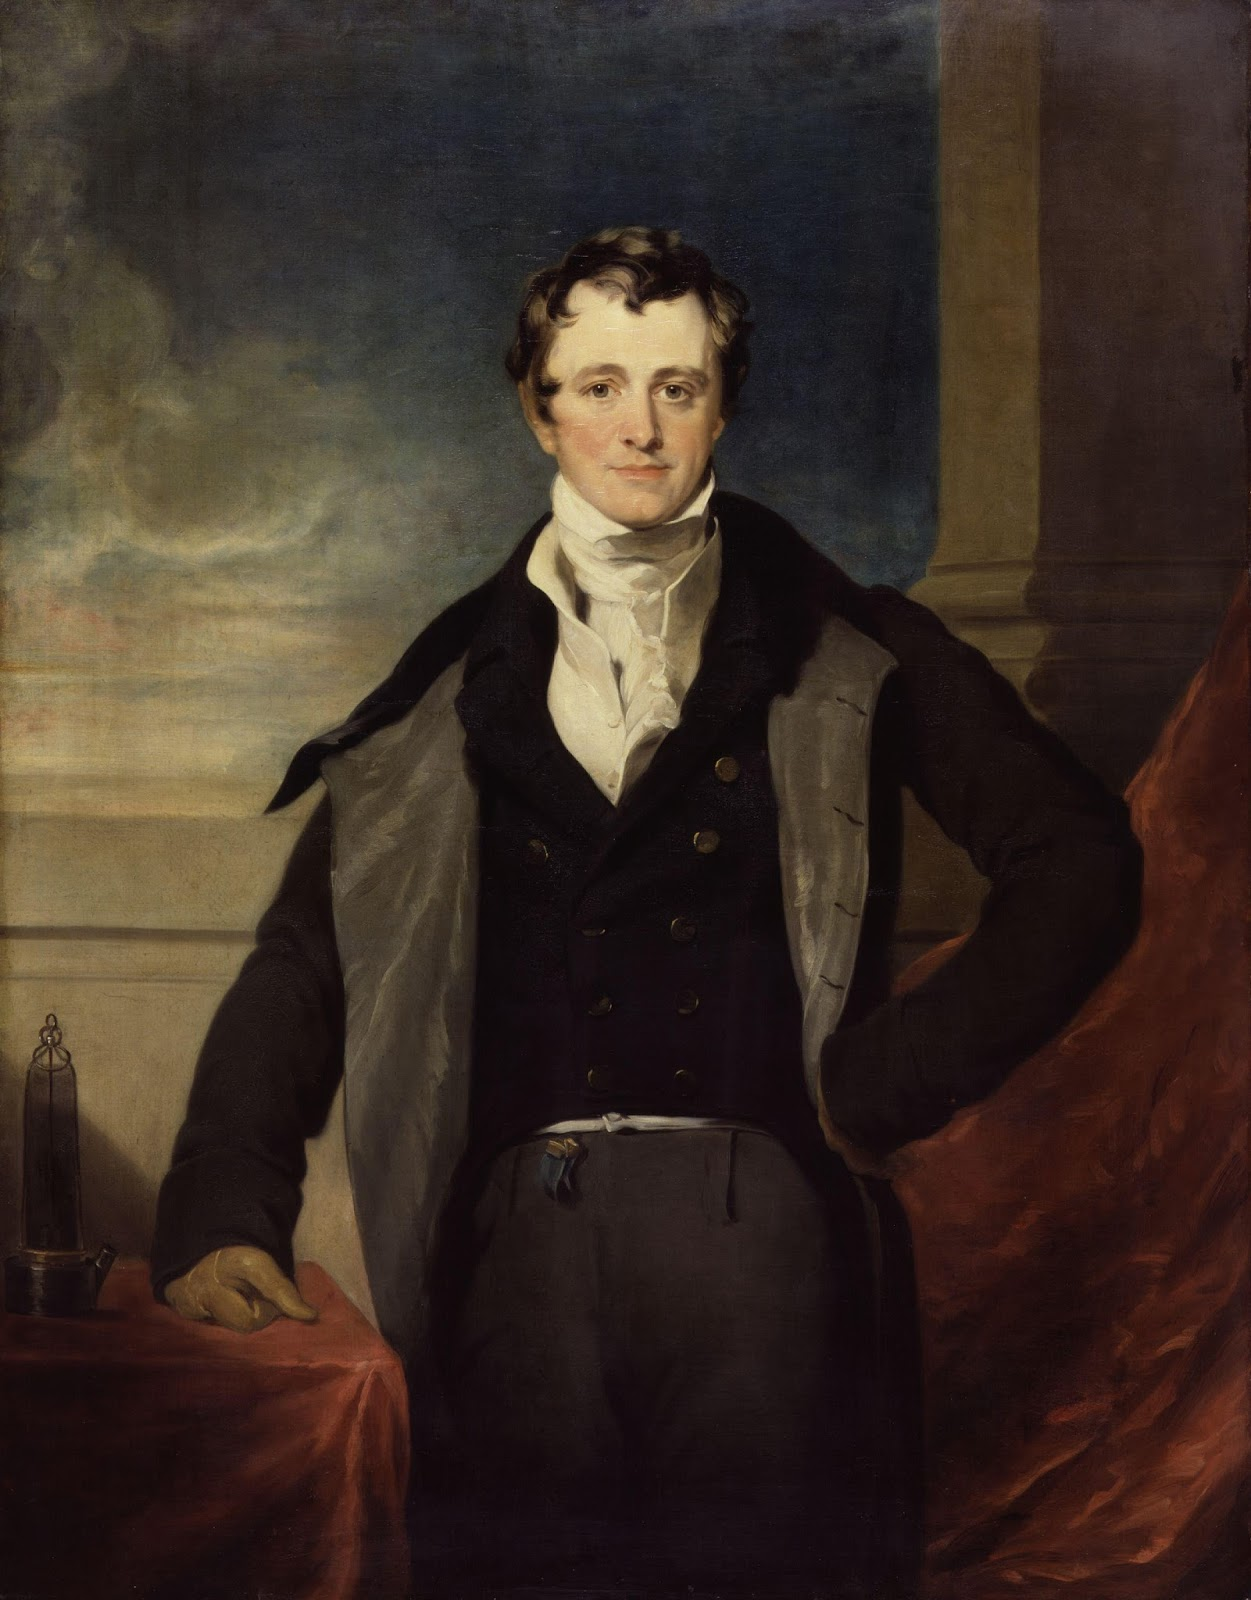 a biography of humphry davy a scientist Less time is spent on exploring the human side of science in this project you will take some personal biography: the story of the scientist sir humphry davy.